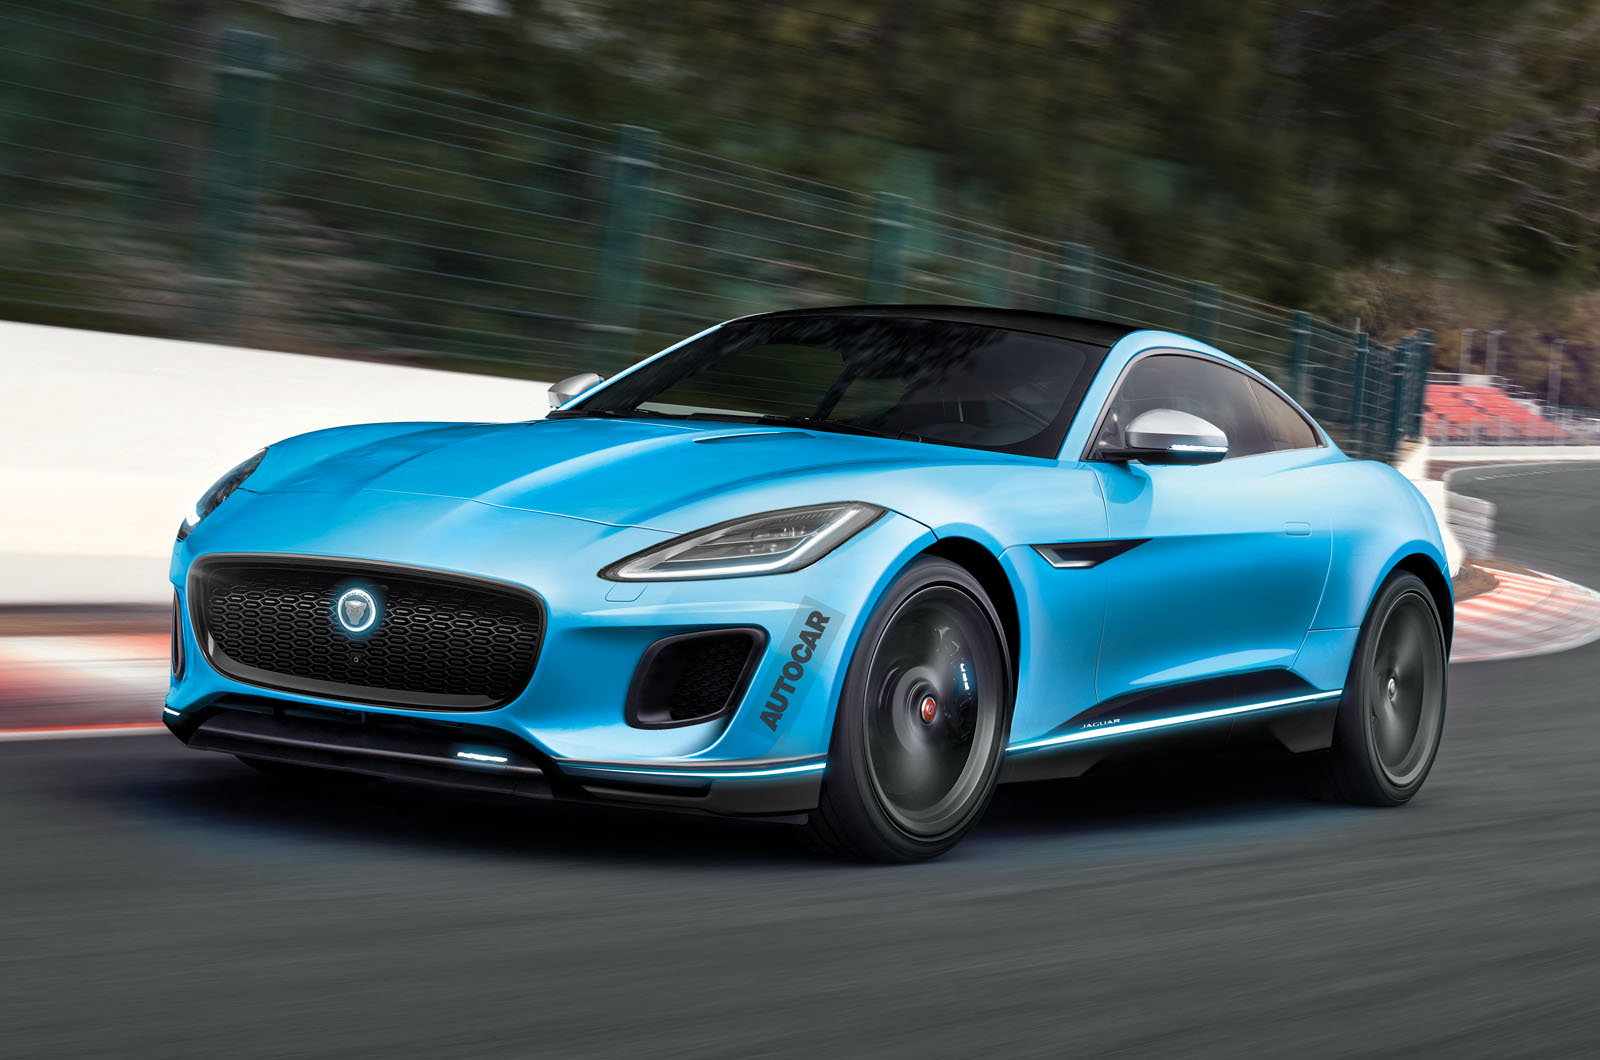 Jaguar F-Type could become electric halo model  Autocar